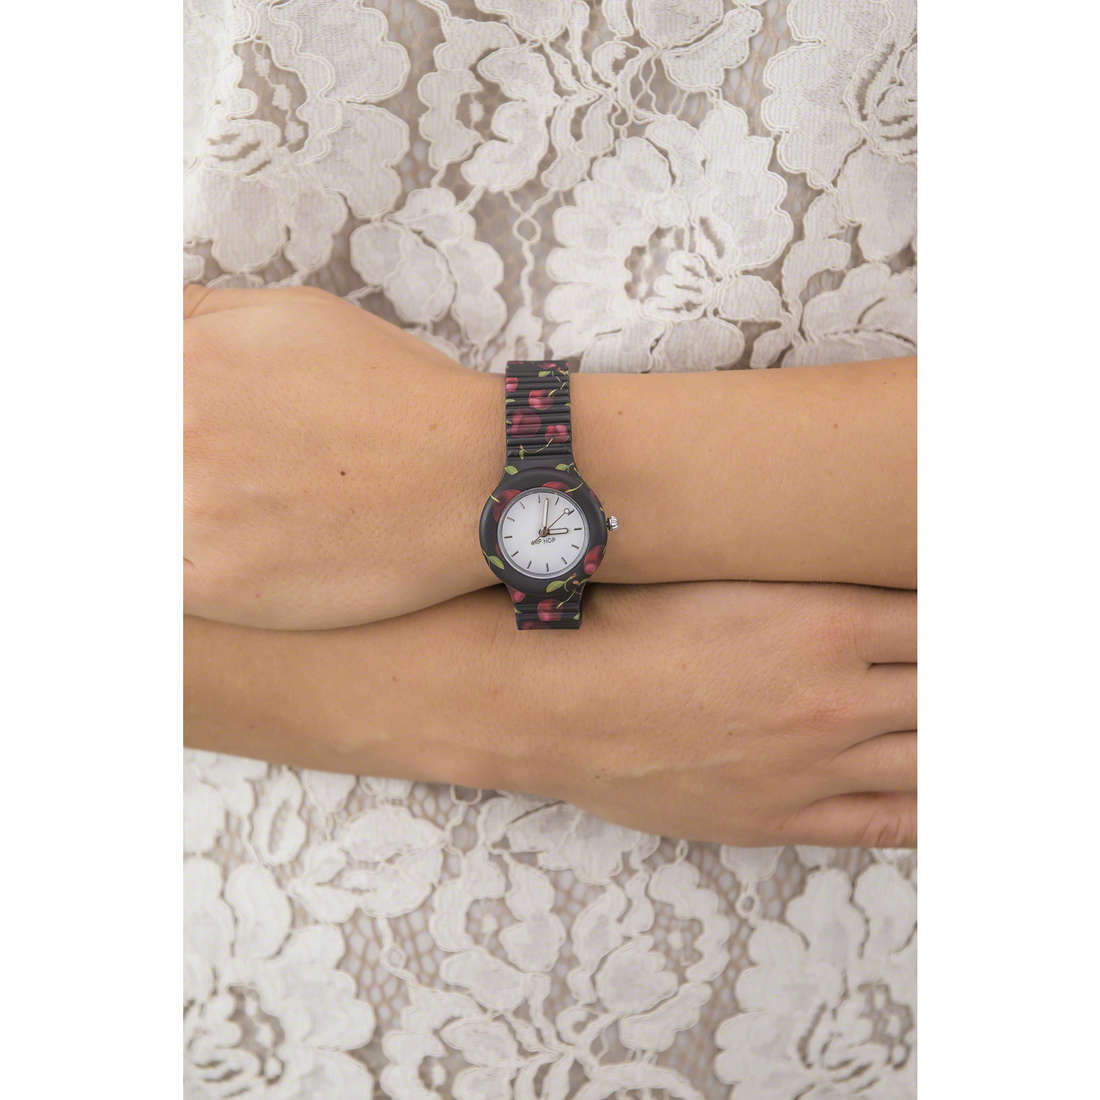 Hip Hop watch bands Fruit woman HWU0670 indosso